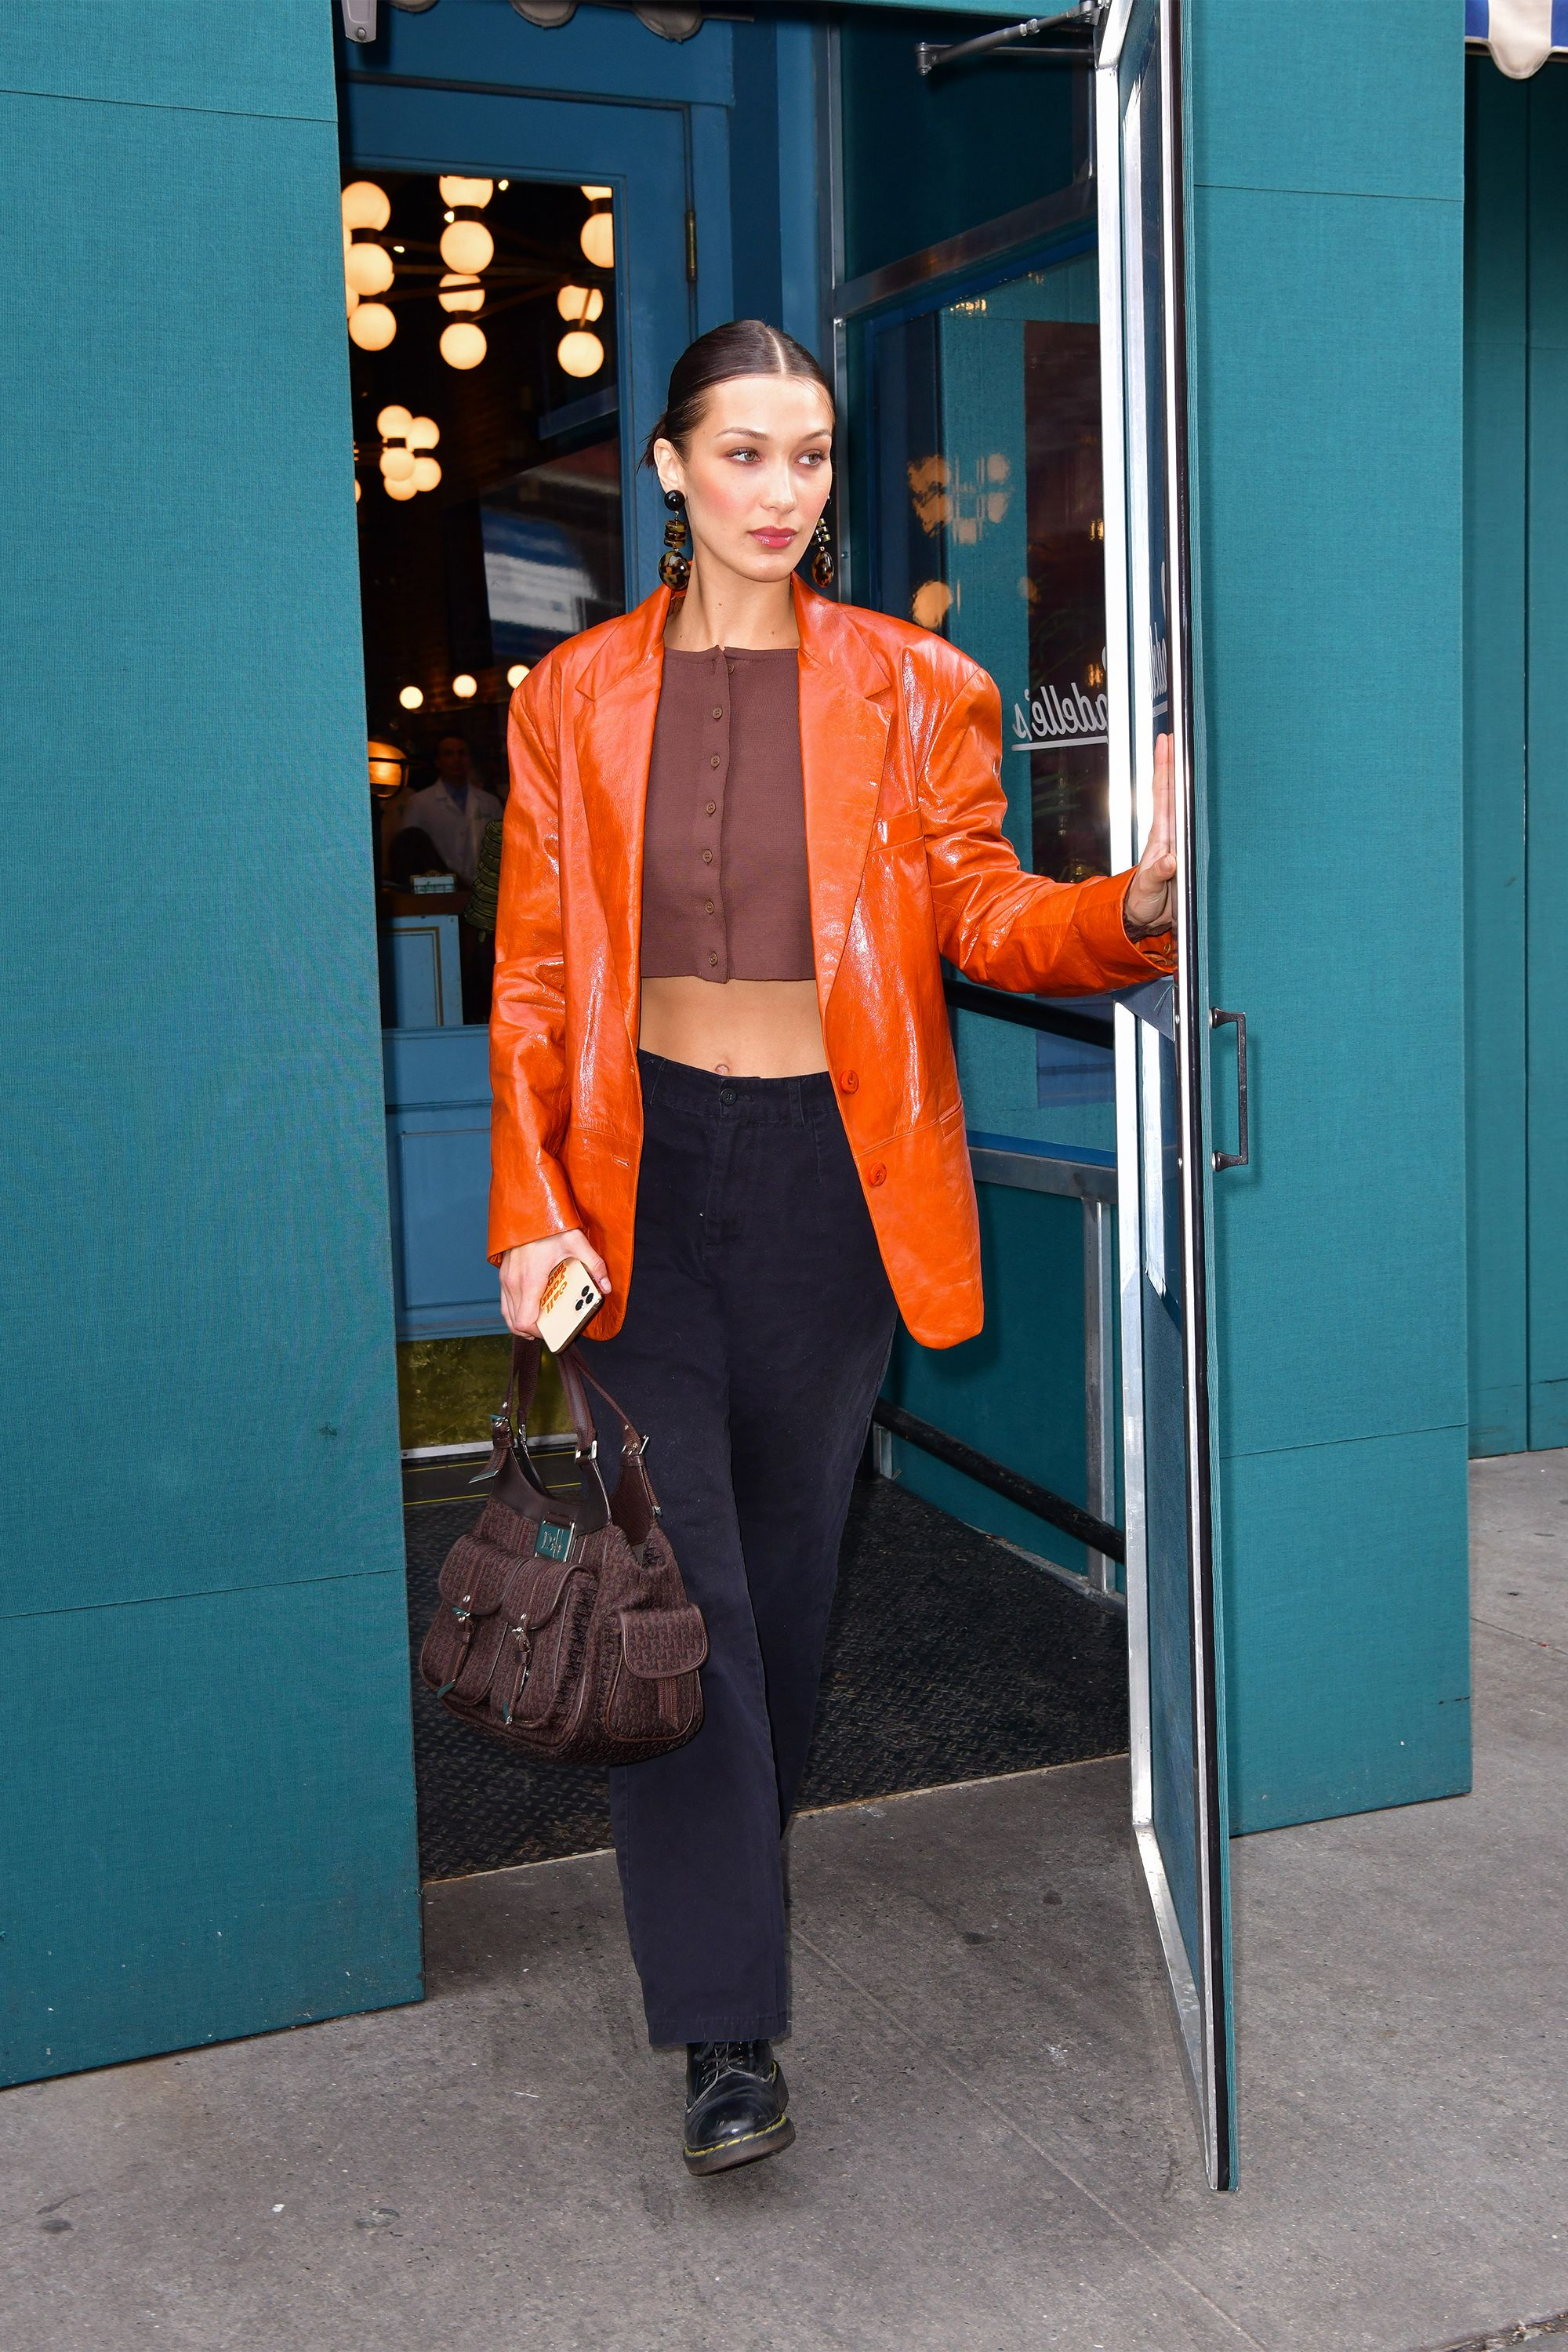 15 Spring Outfit Ideas for 15 - What to Wear This Spring